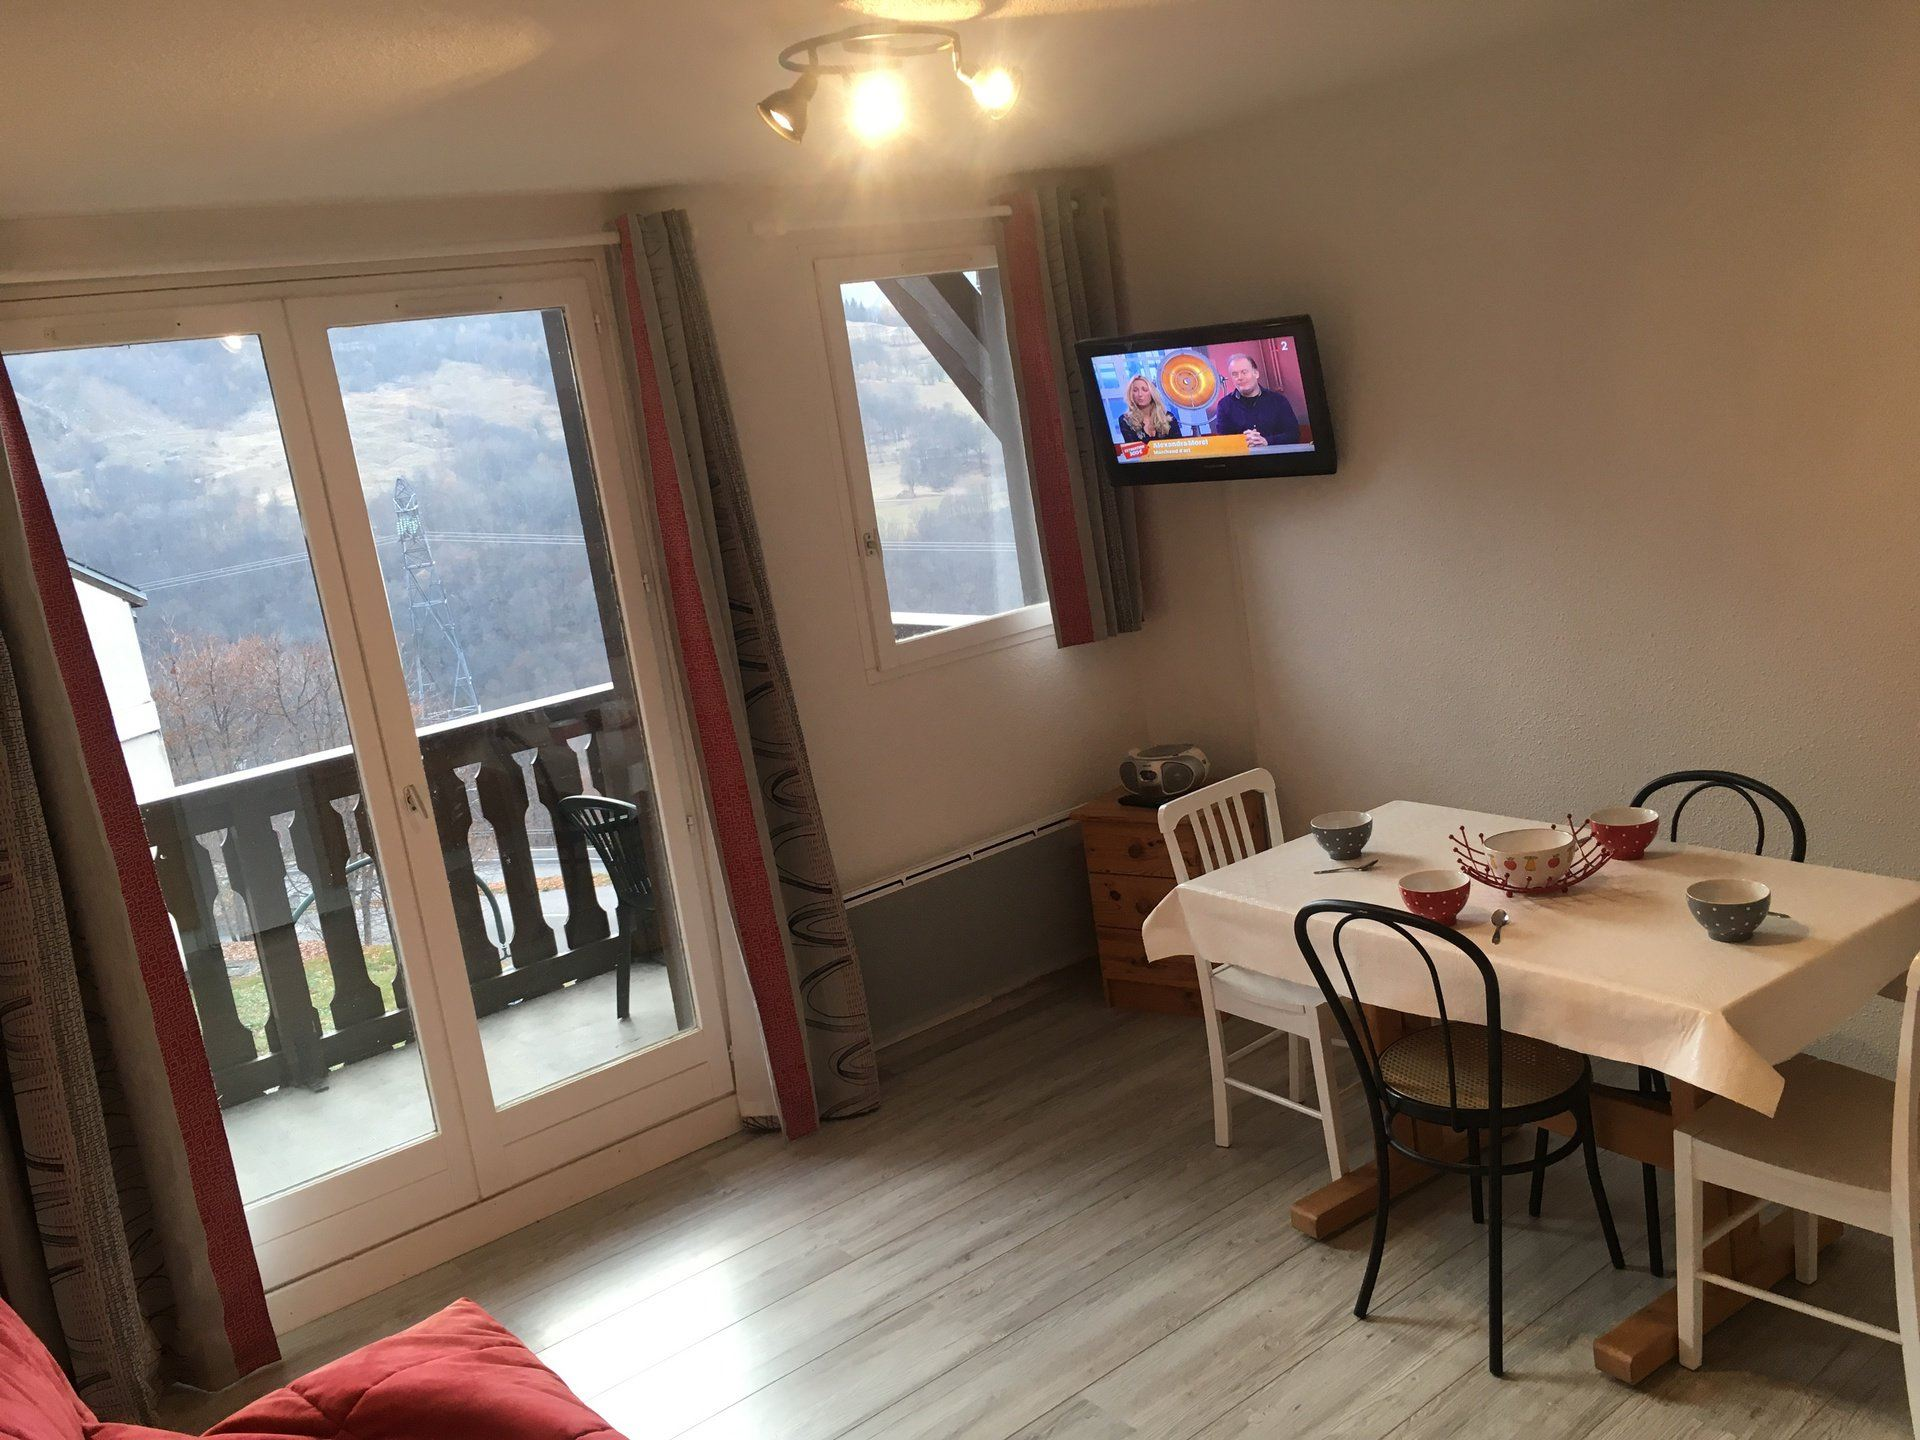 2 Rooms 4 Pers ski-in ski-out / DAHLIA B1